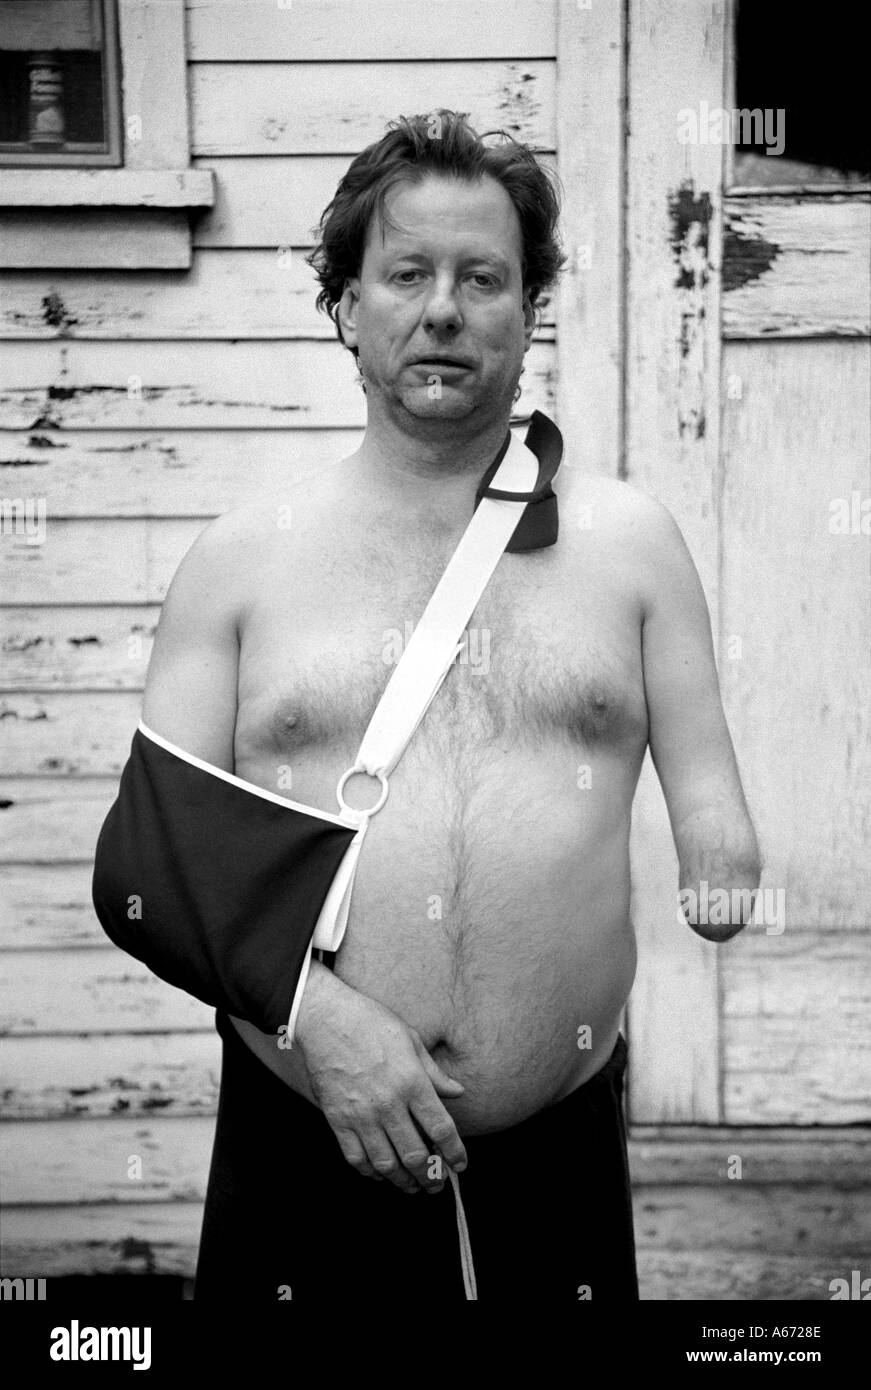 one armed man with good arm in a sling stock photo 422542 alamy